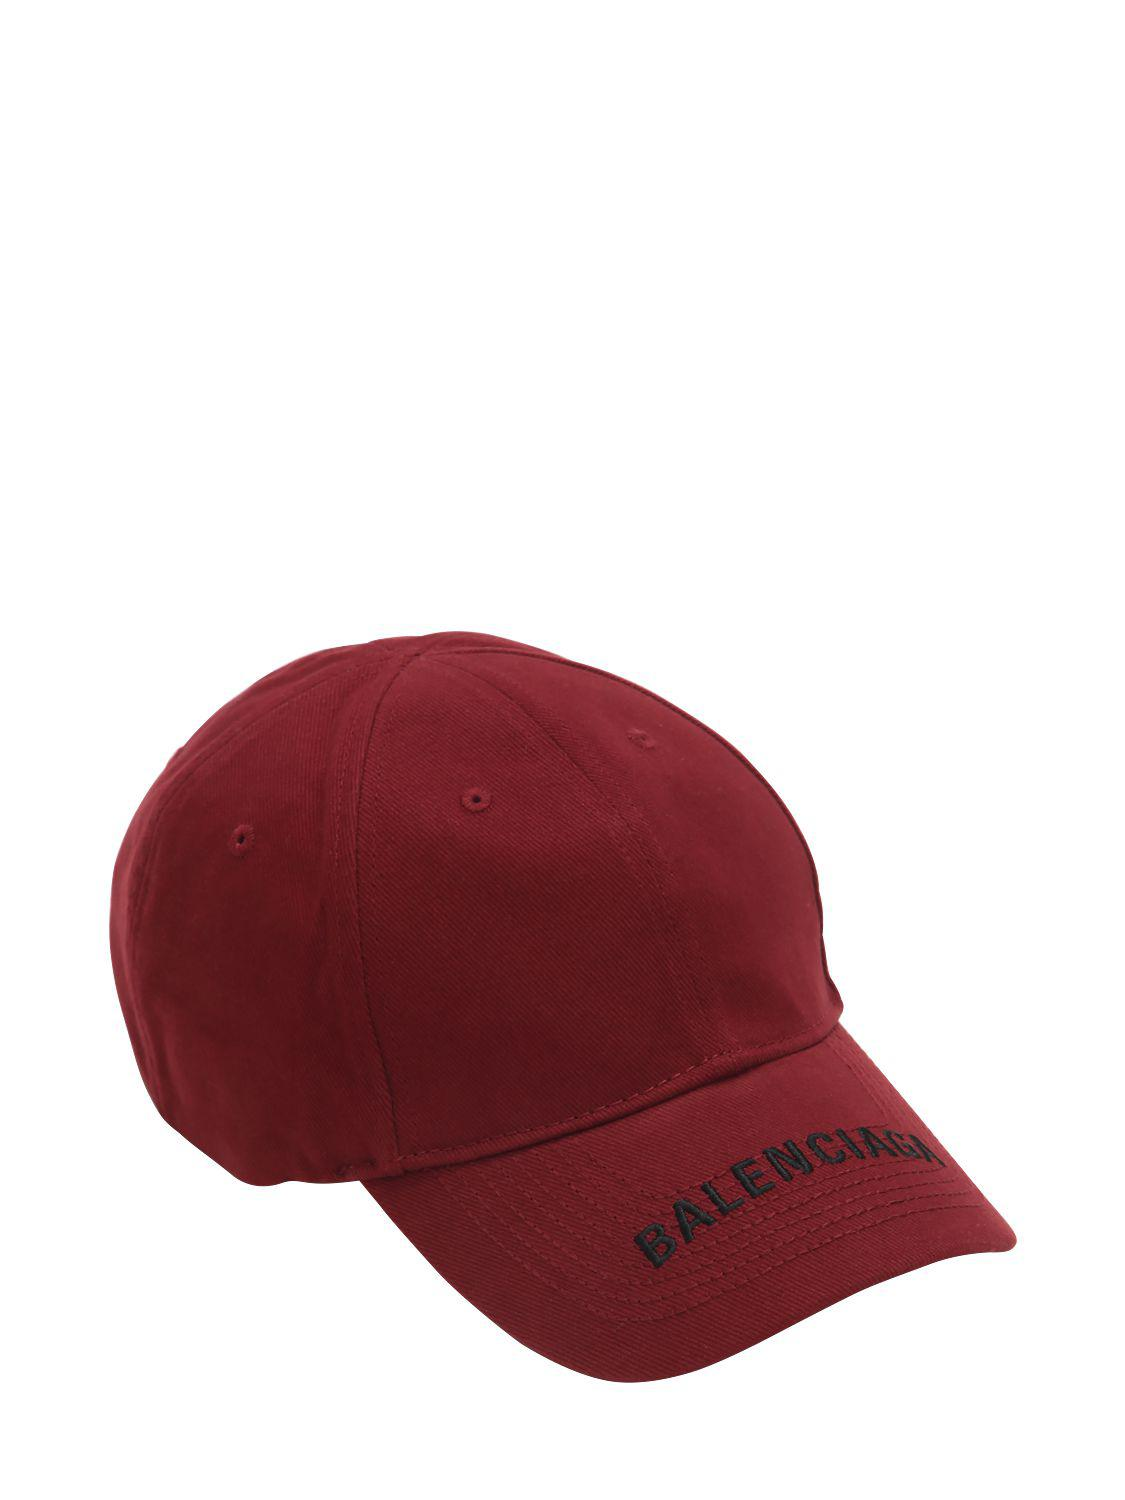 12551e7c6d6b7 Balenciaga Logo Embroidered Gabardine Hat in Red for Men - Lyst